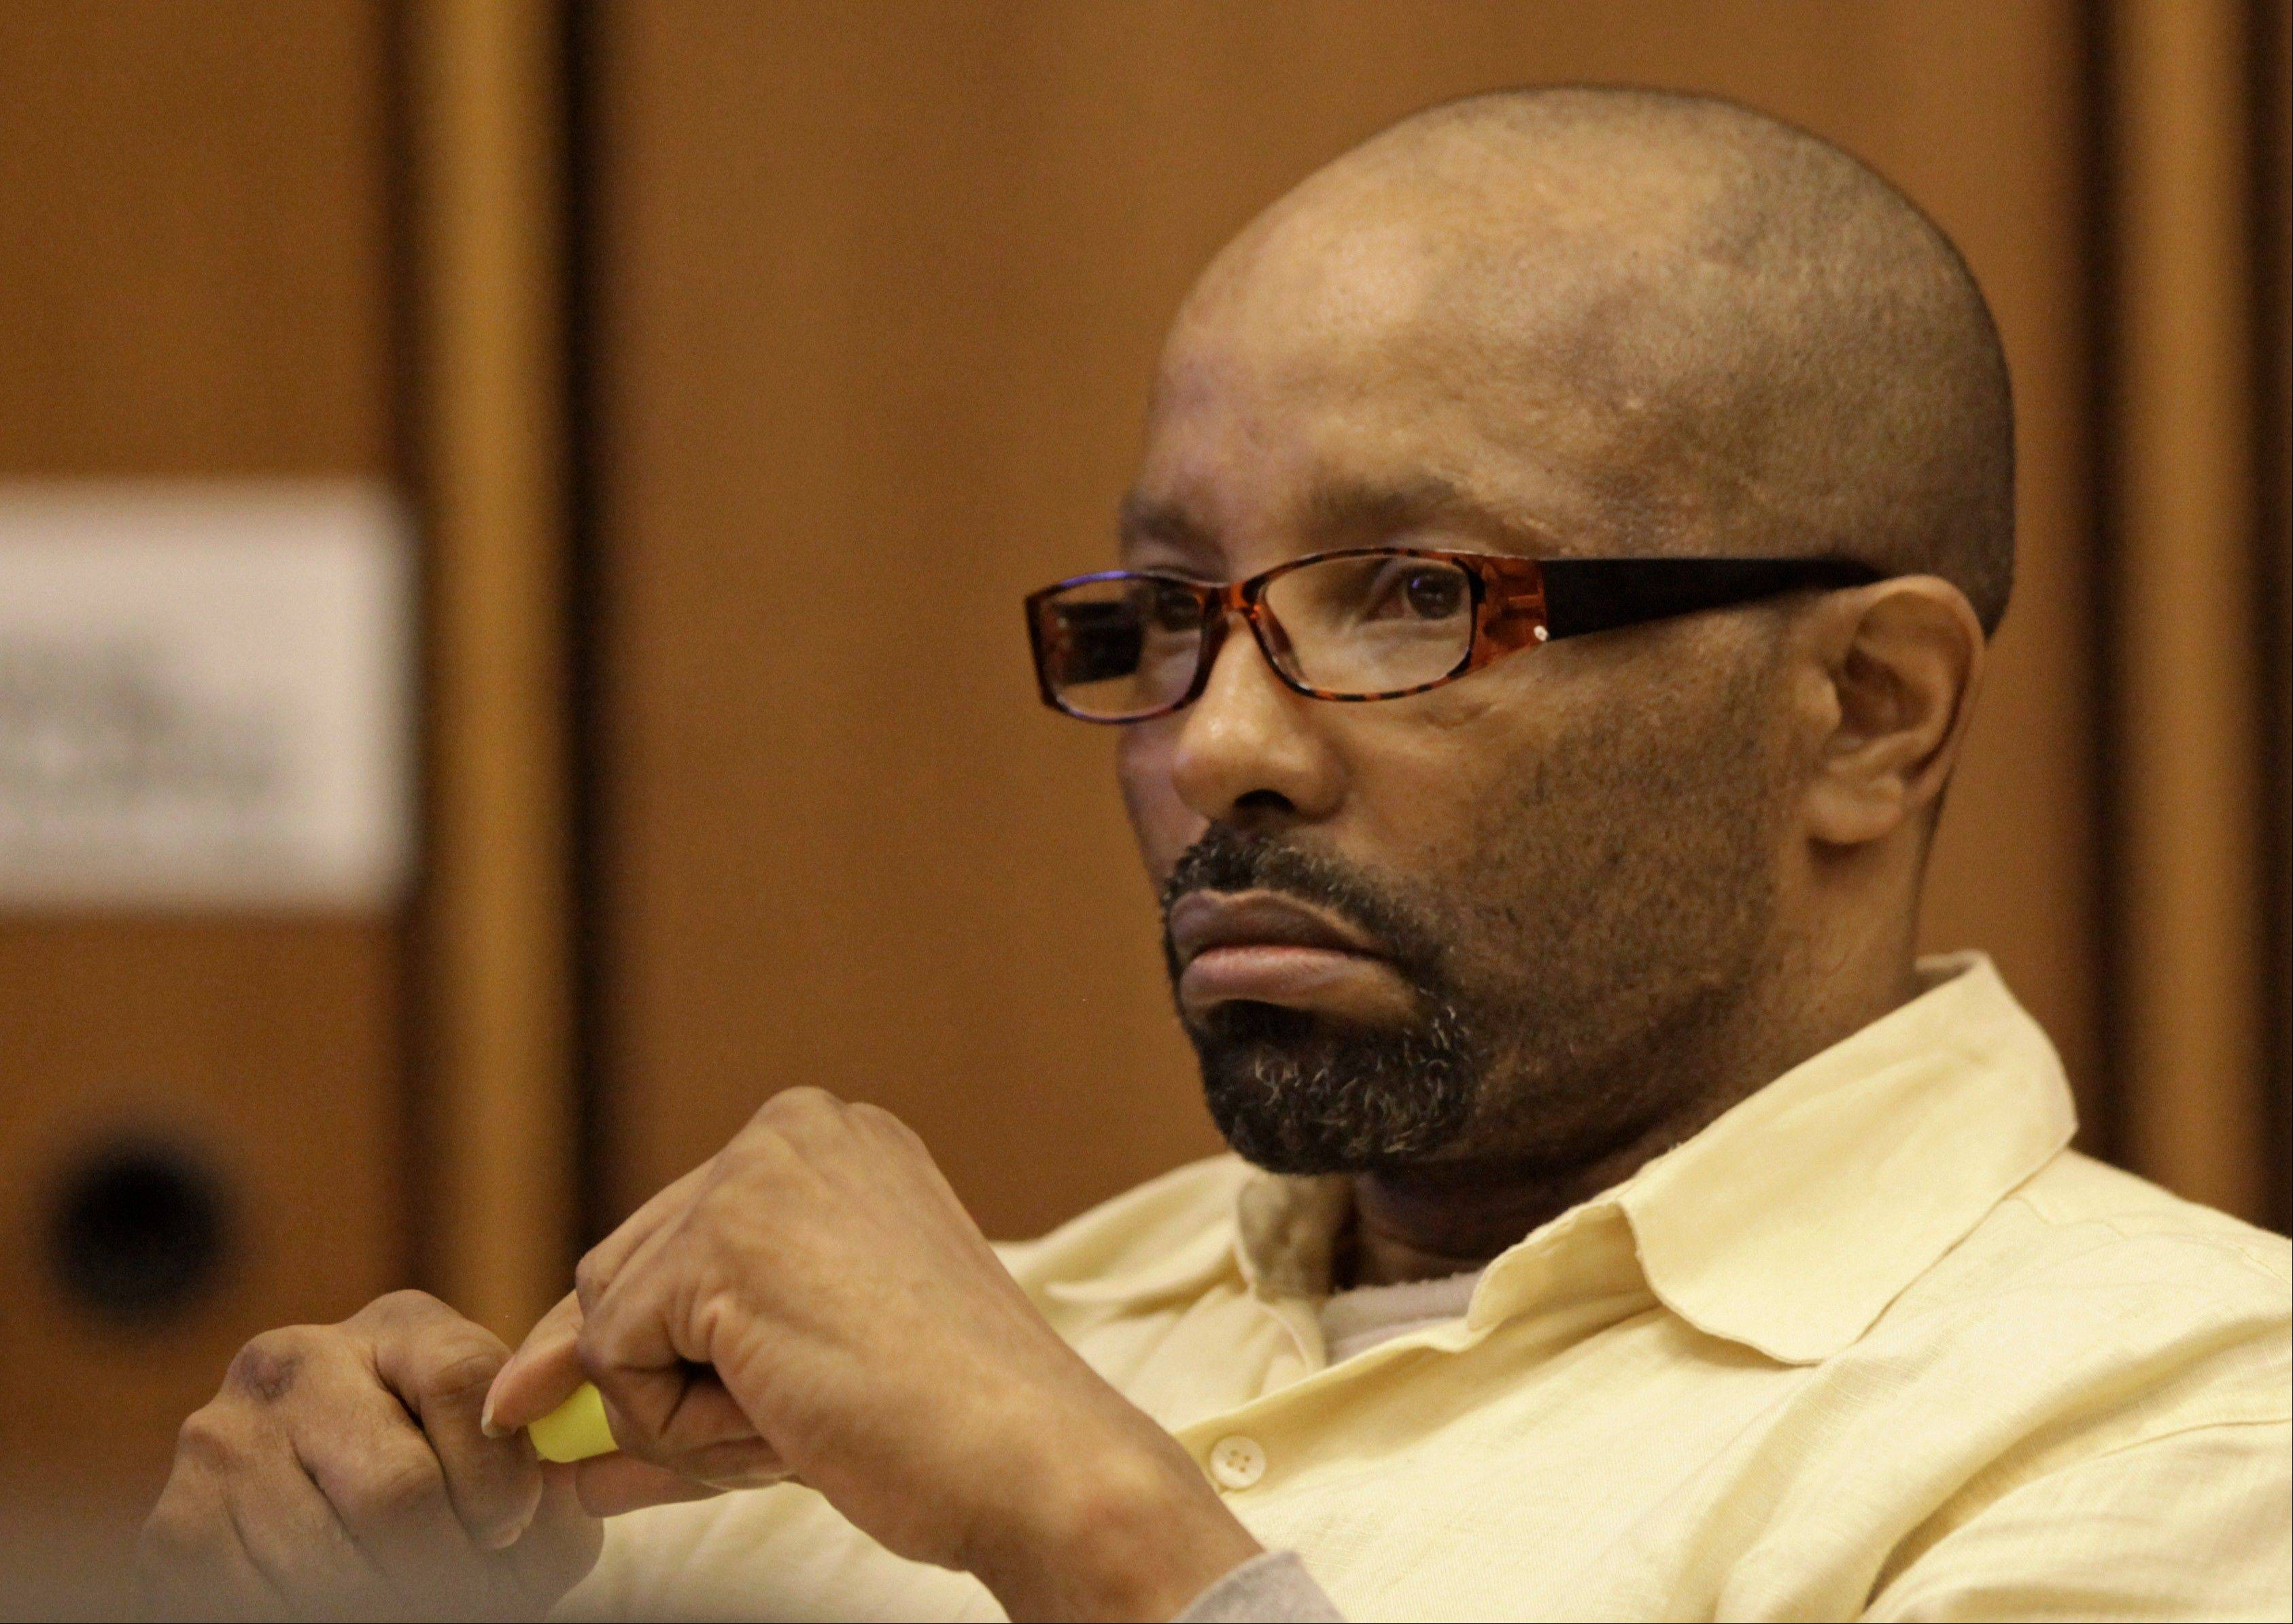 Anthony Sowell listens to testimony during his trial Thursday in Cleveland.